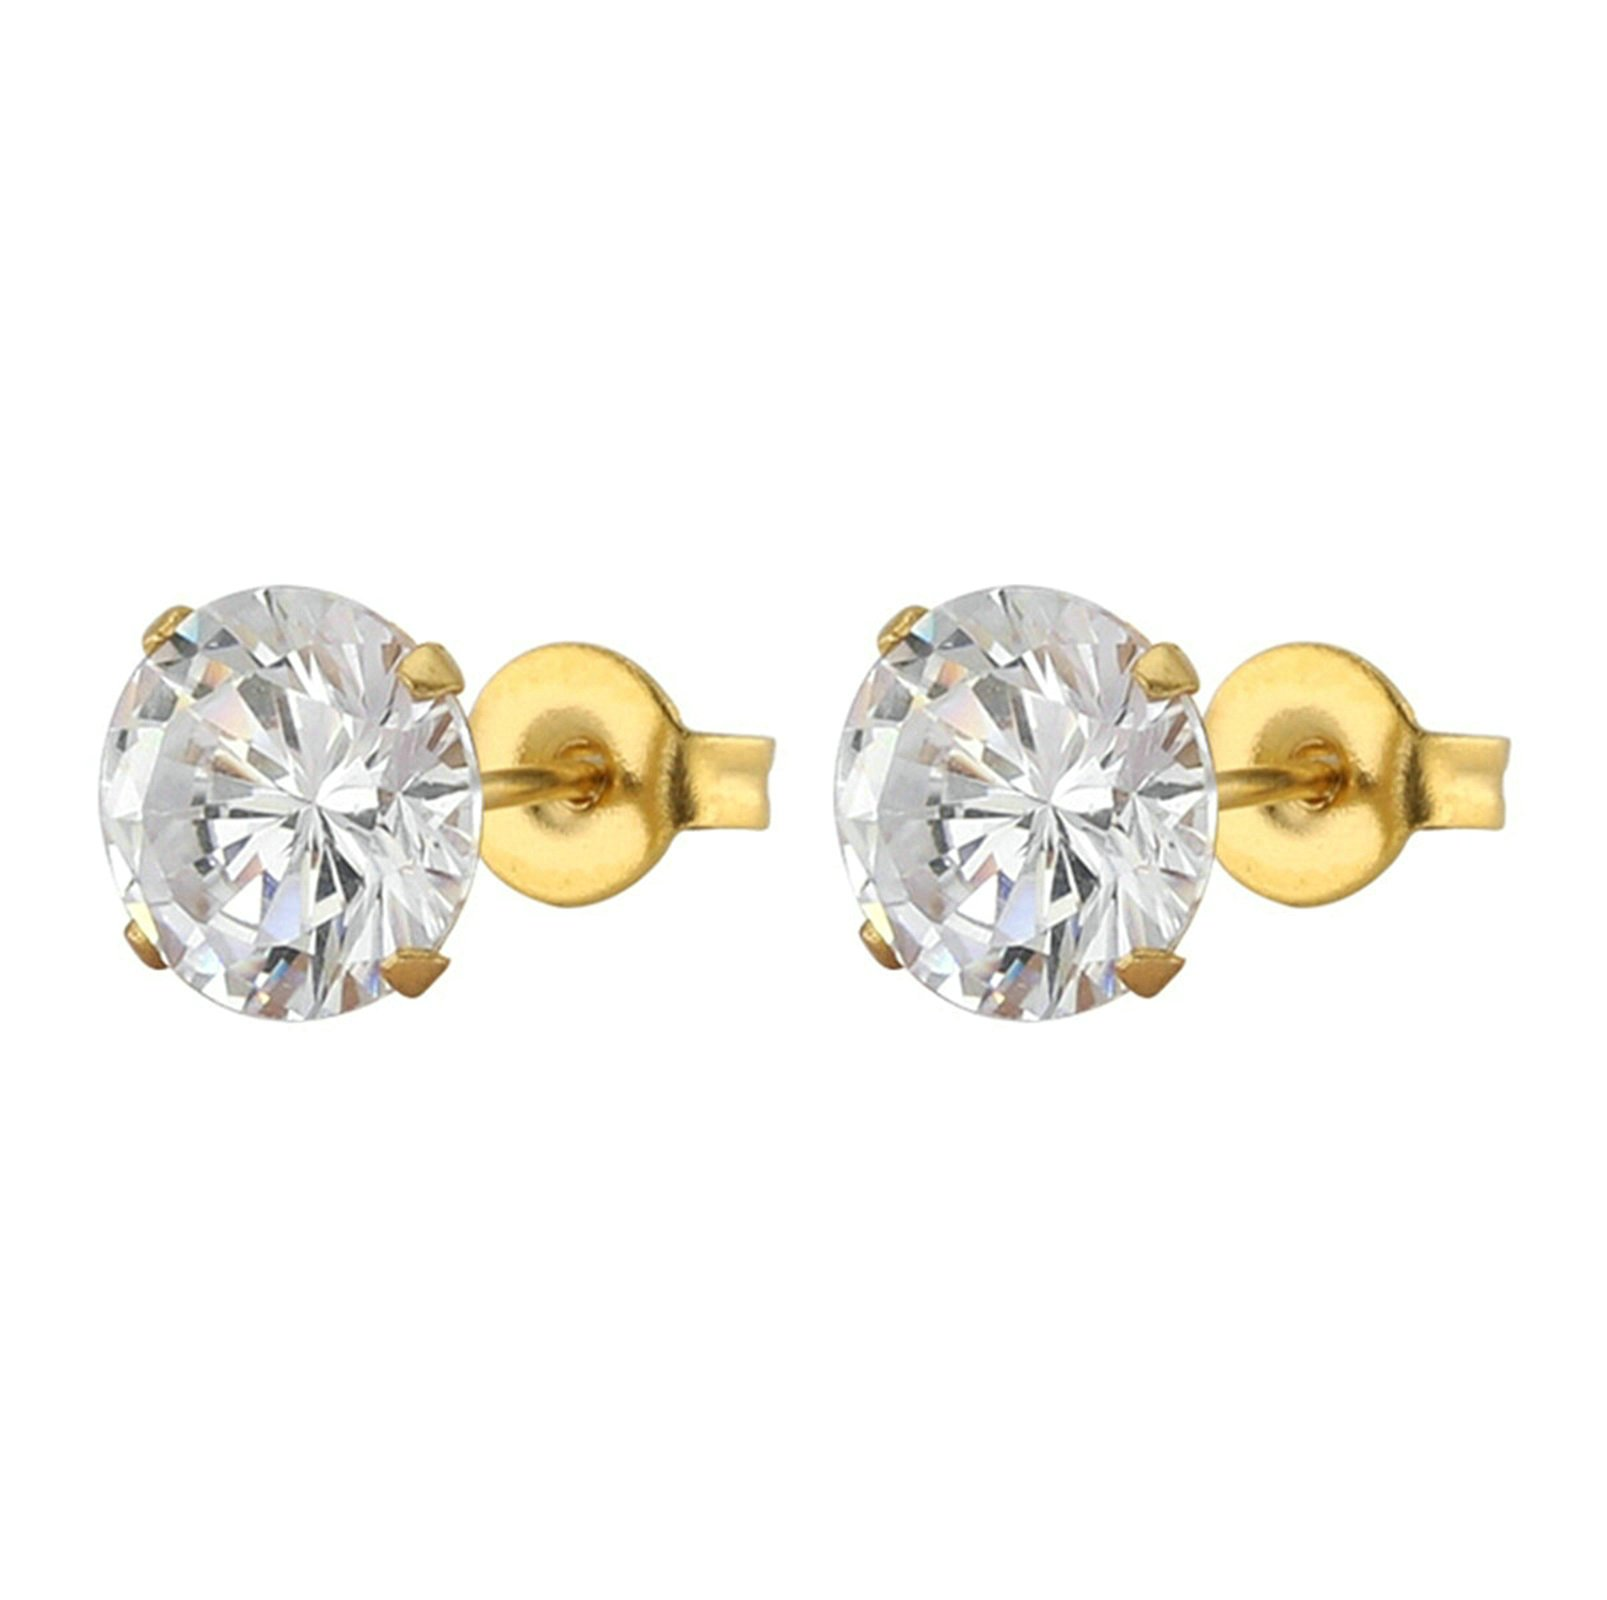 Aooaz 3-8MM Stainless Steel Gold Plated Earrings with CZ Zircon Ear Stud Women Earrings Gothic